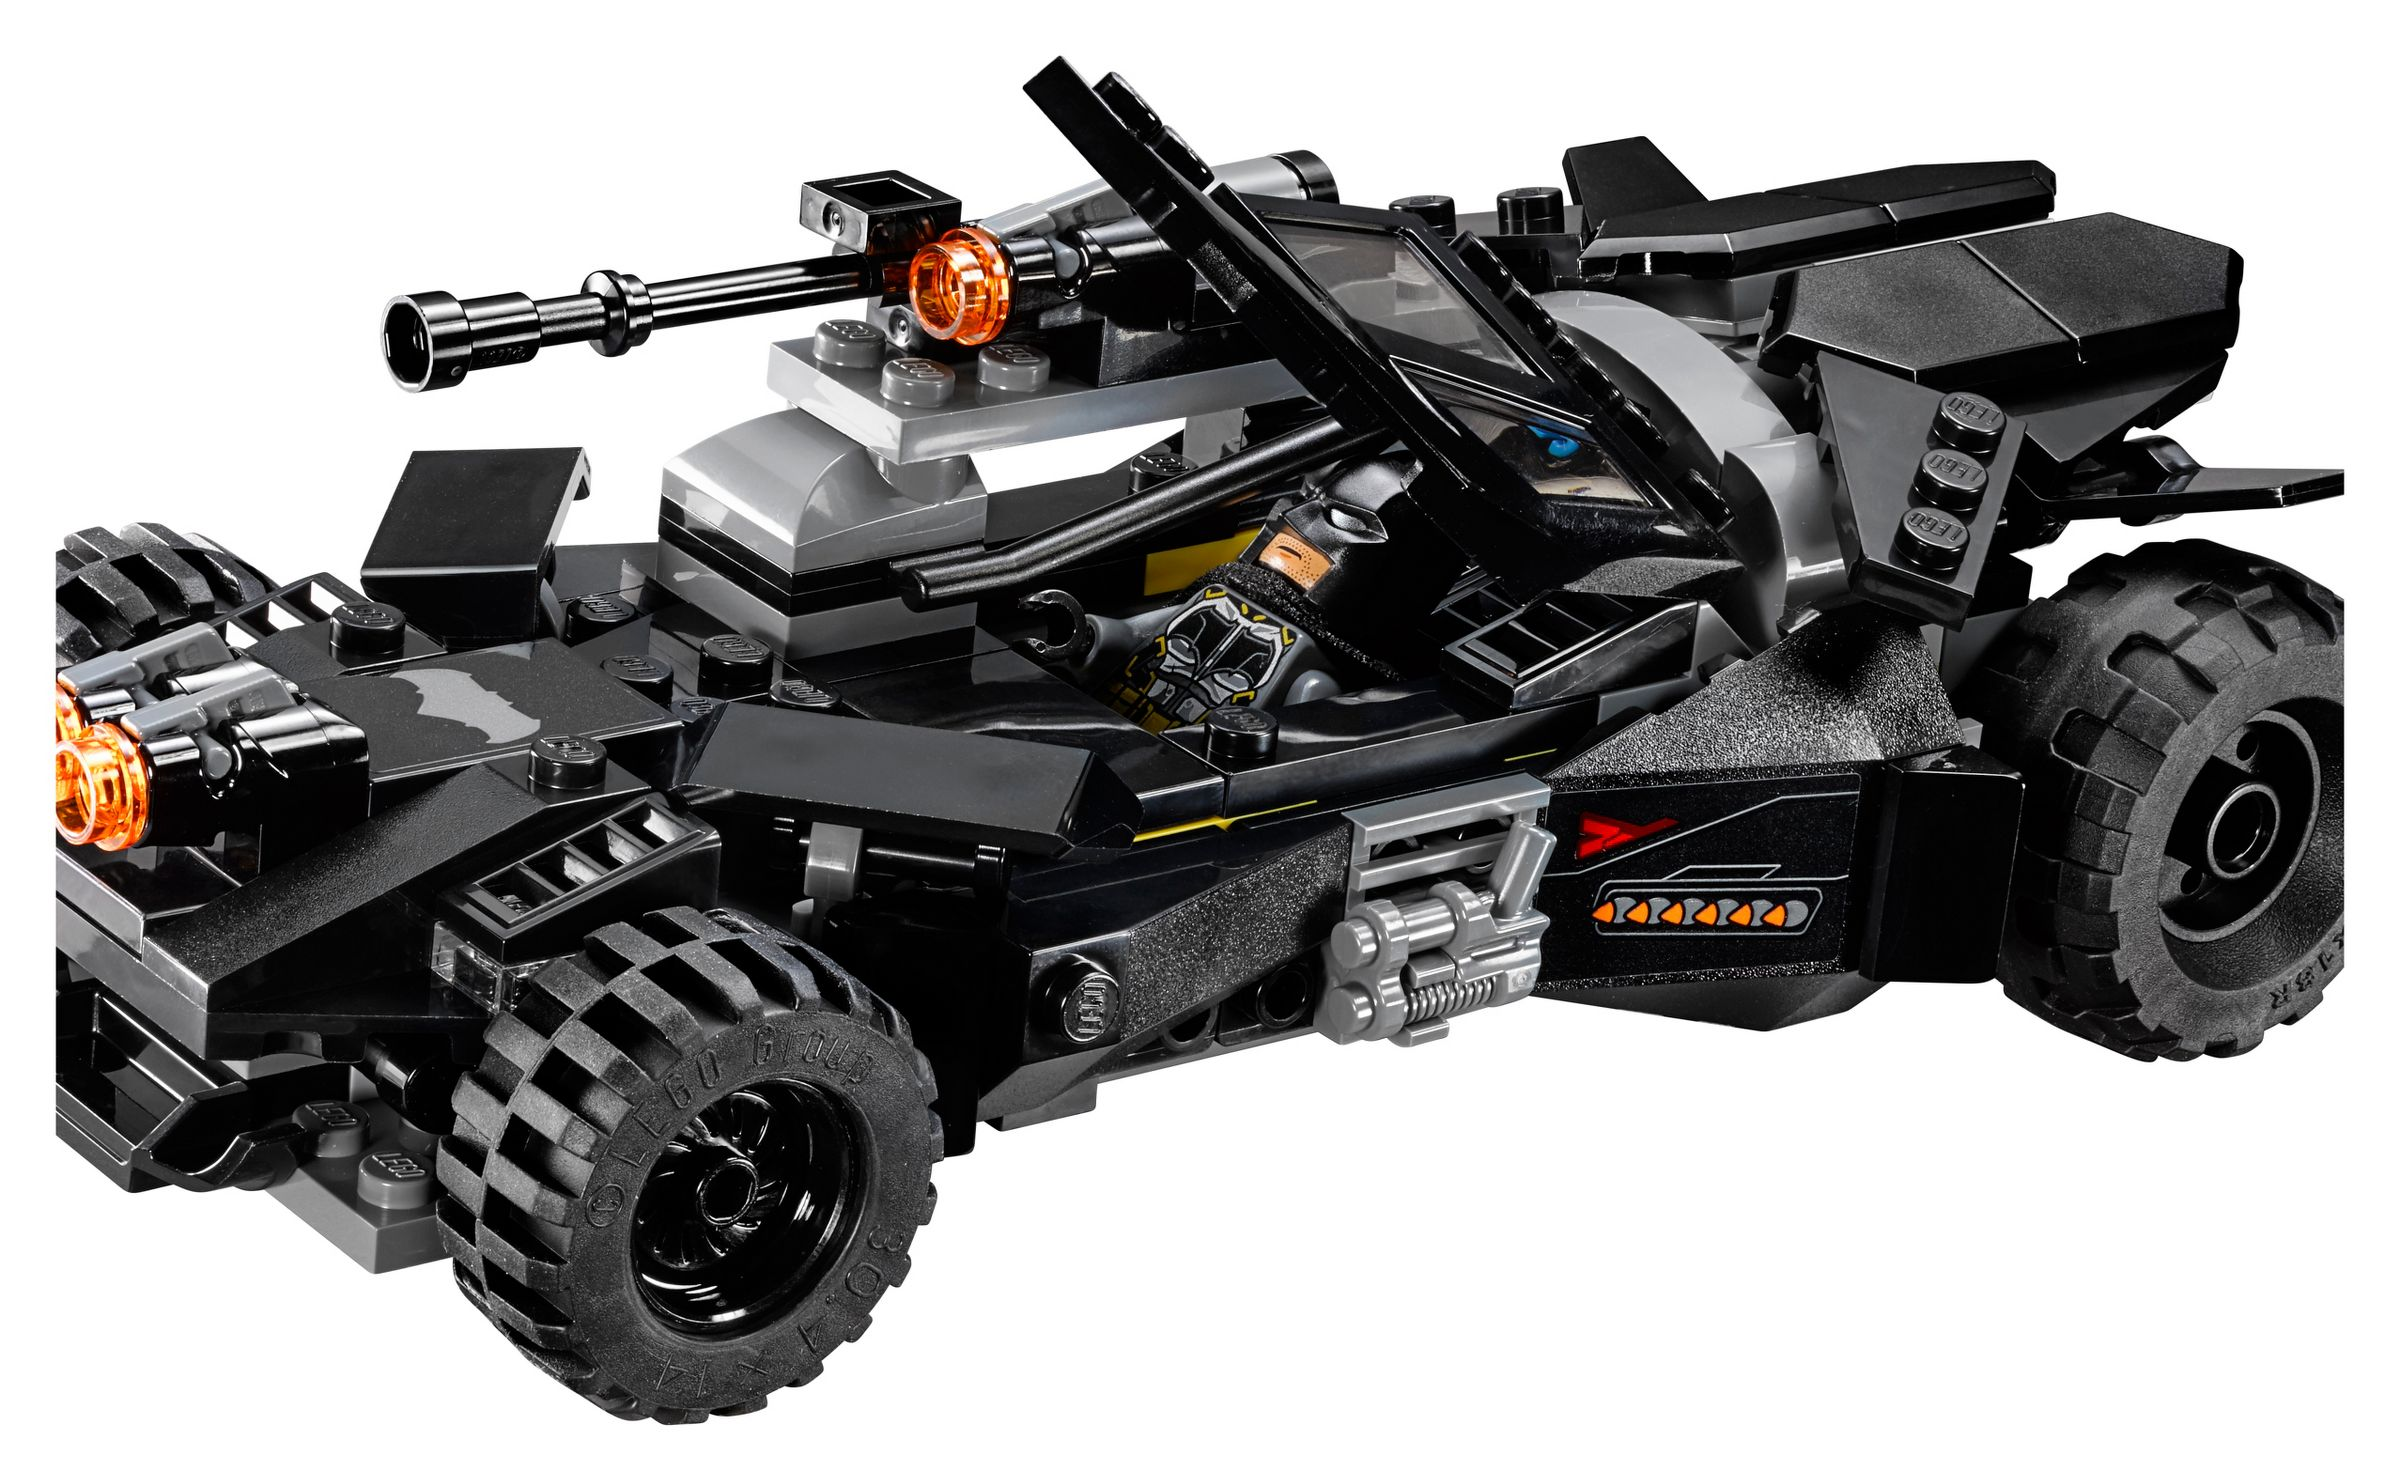 LEGO Super Heroes 76087 Flying Fox: Batmobil-Attacke aus der Luft LEGO_76087_alt15.jpg